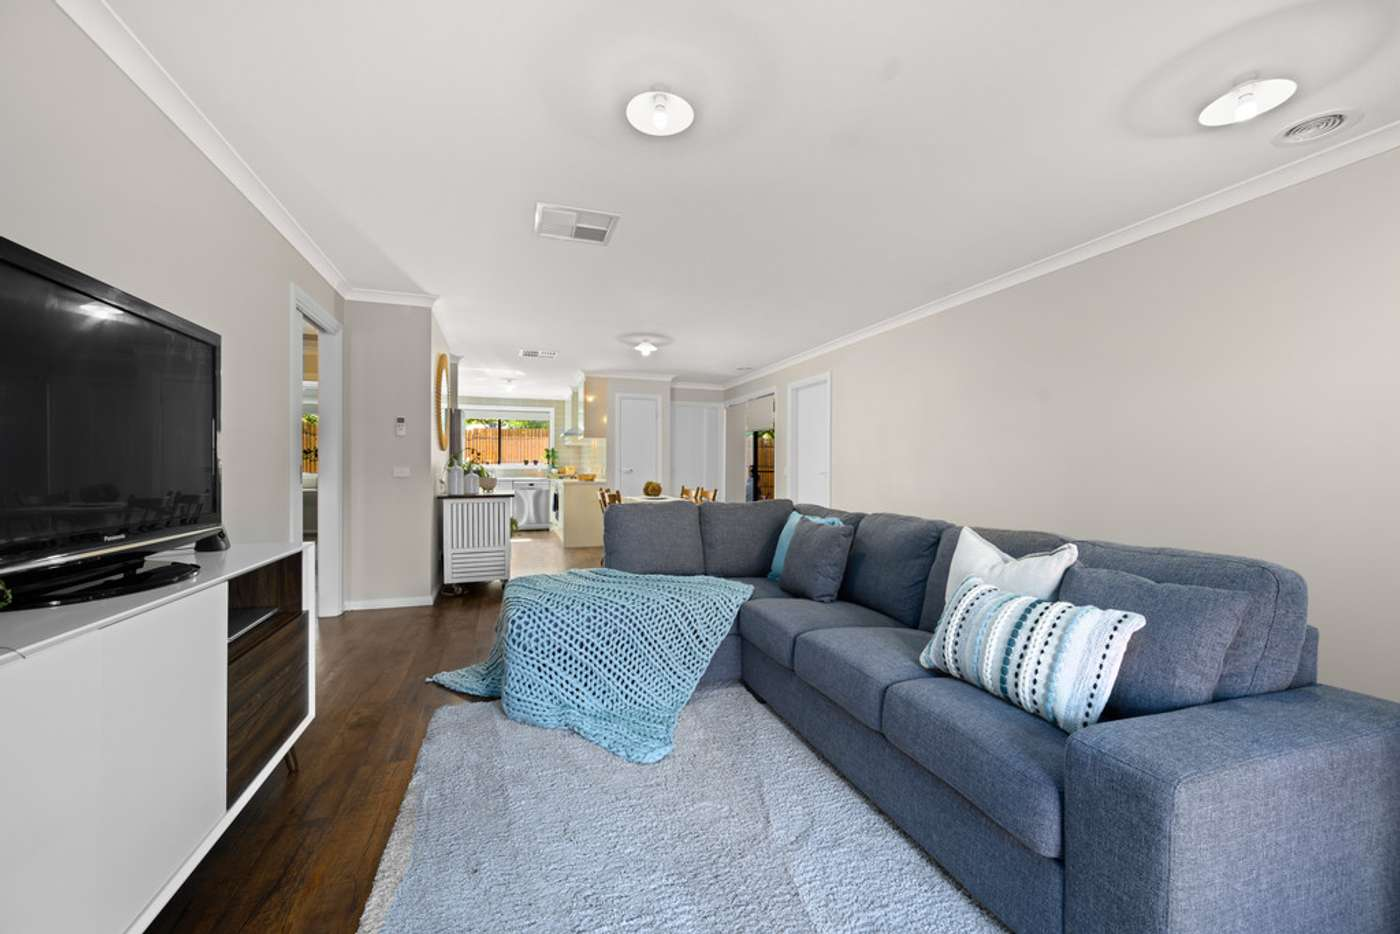 Sixth view of Homely house listing, 2/119 Phillips Street, Wodonga VIC 3690